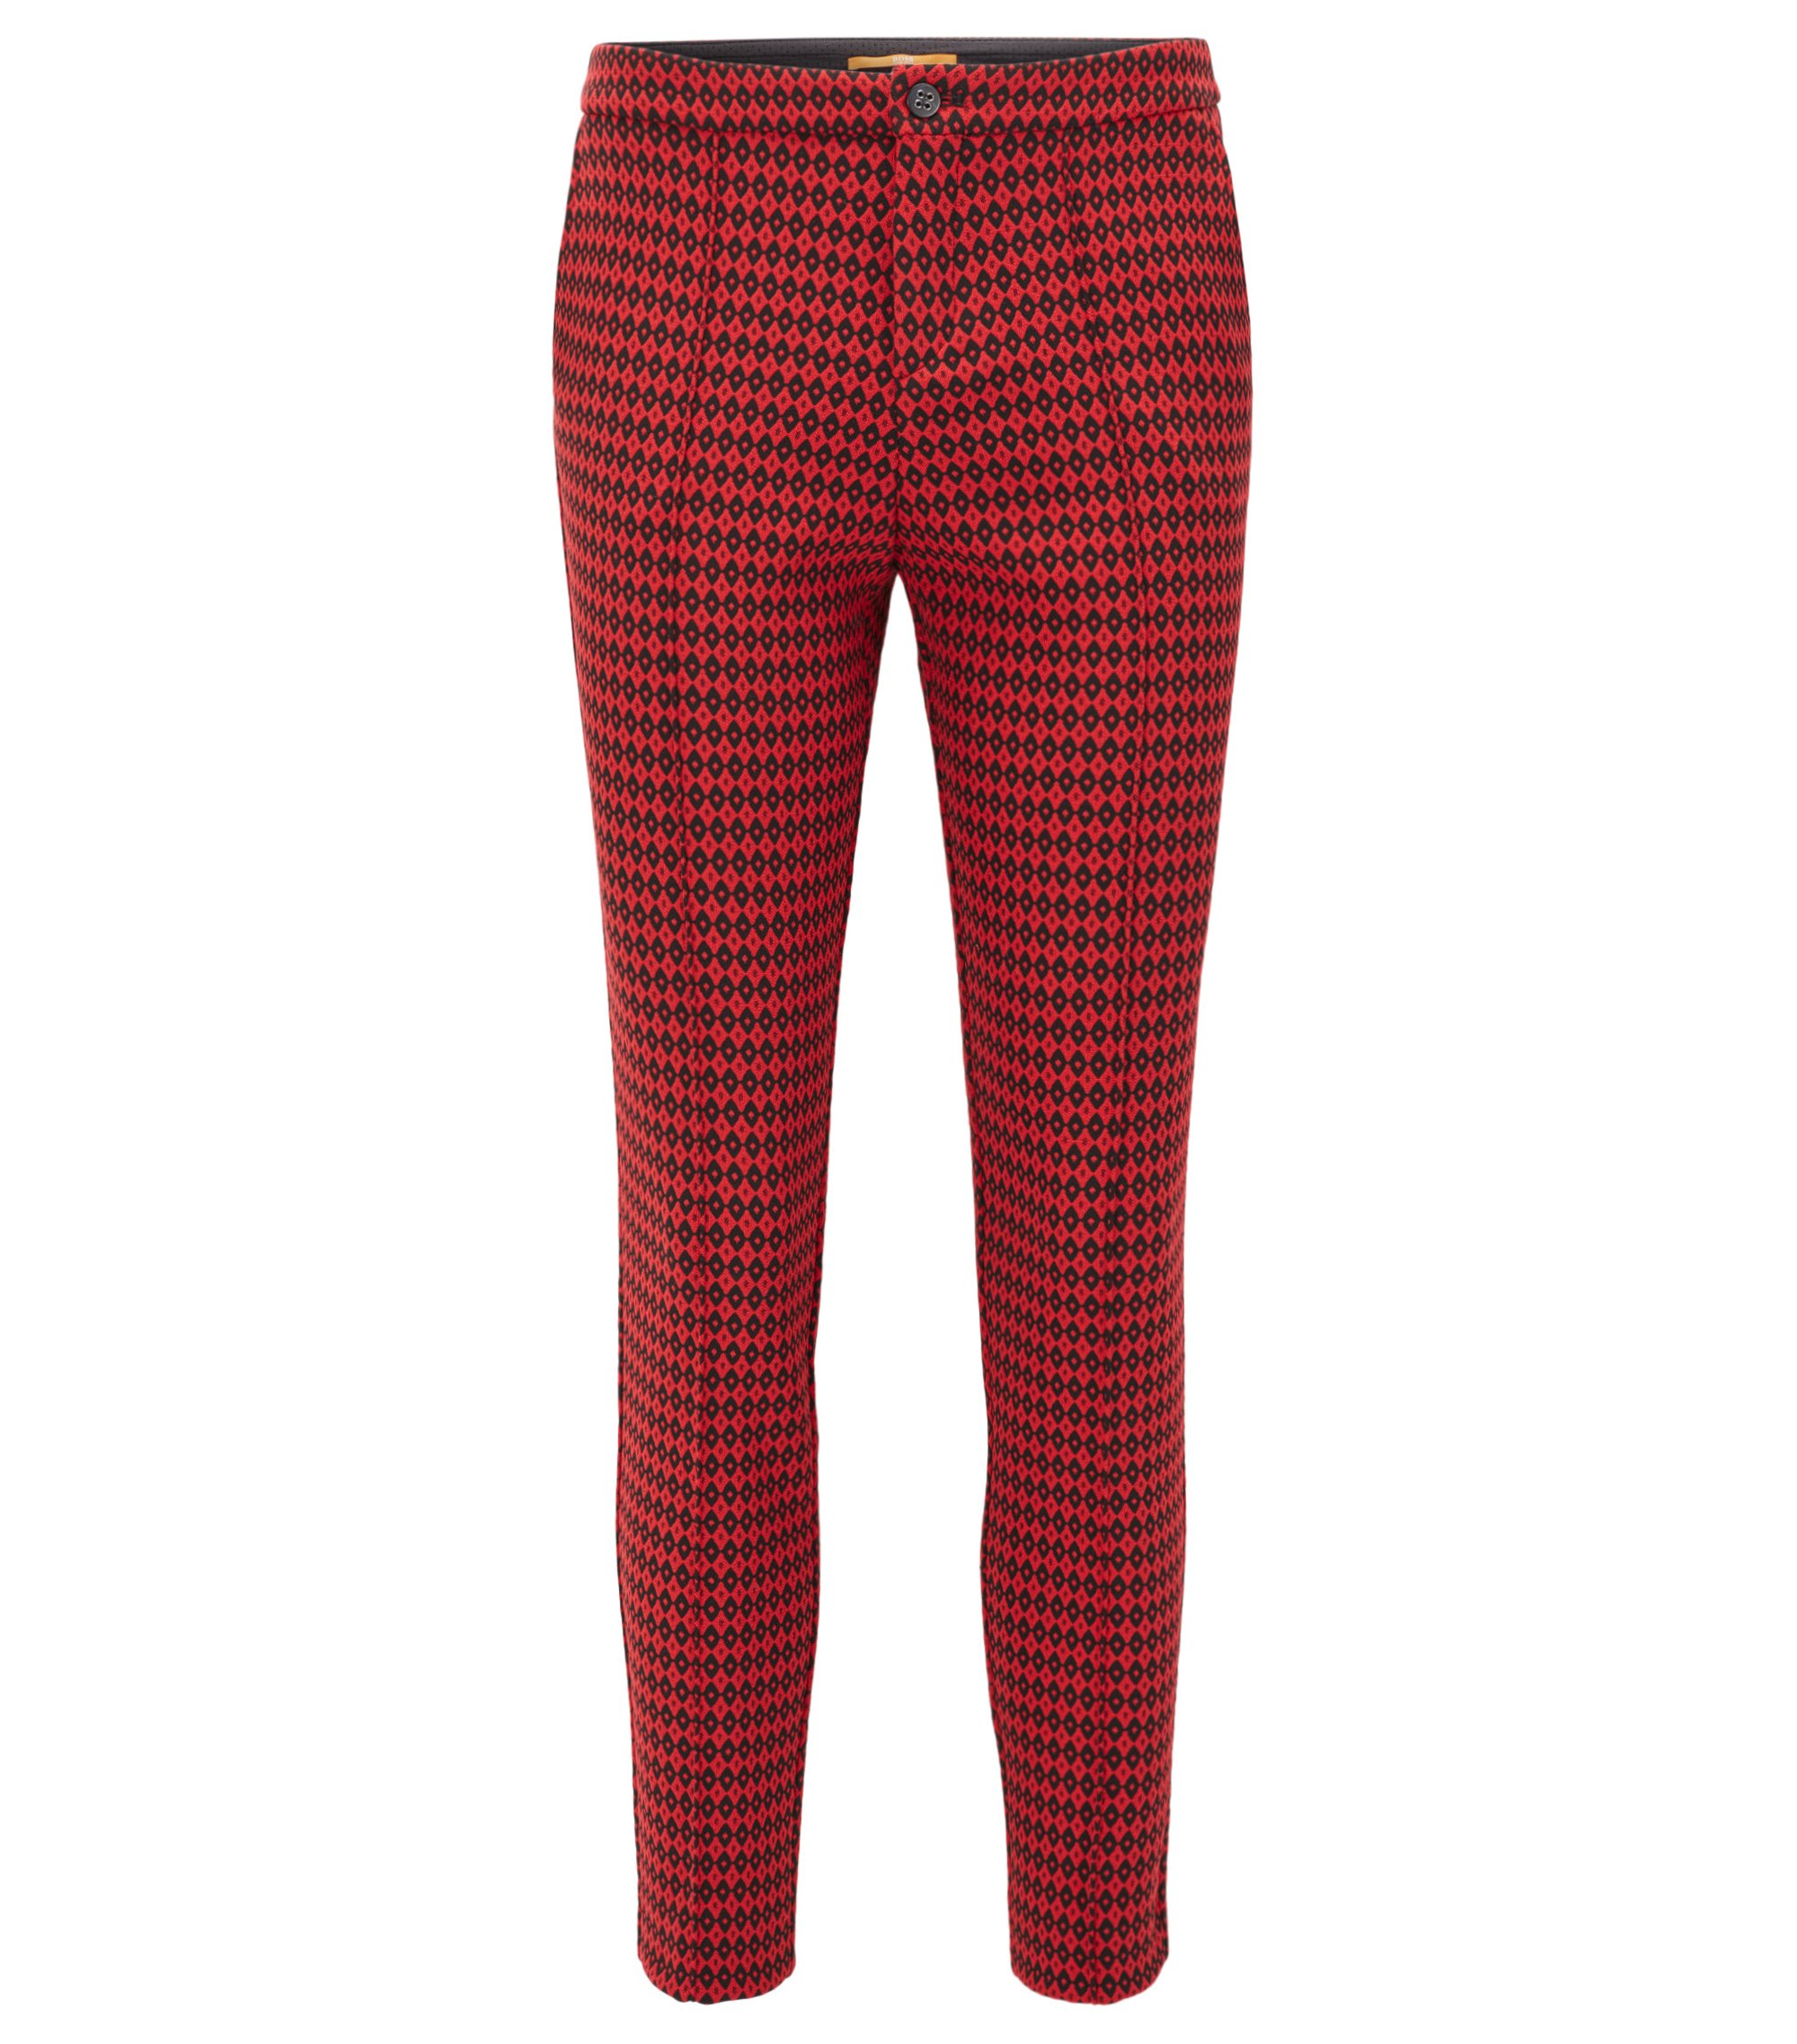 Regular-fit trousers in patterned jacquard, Patterned